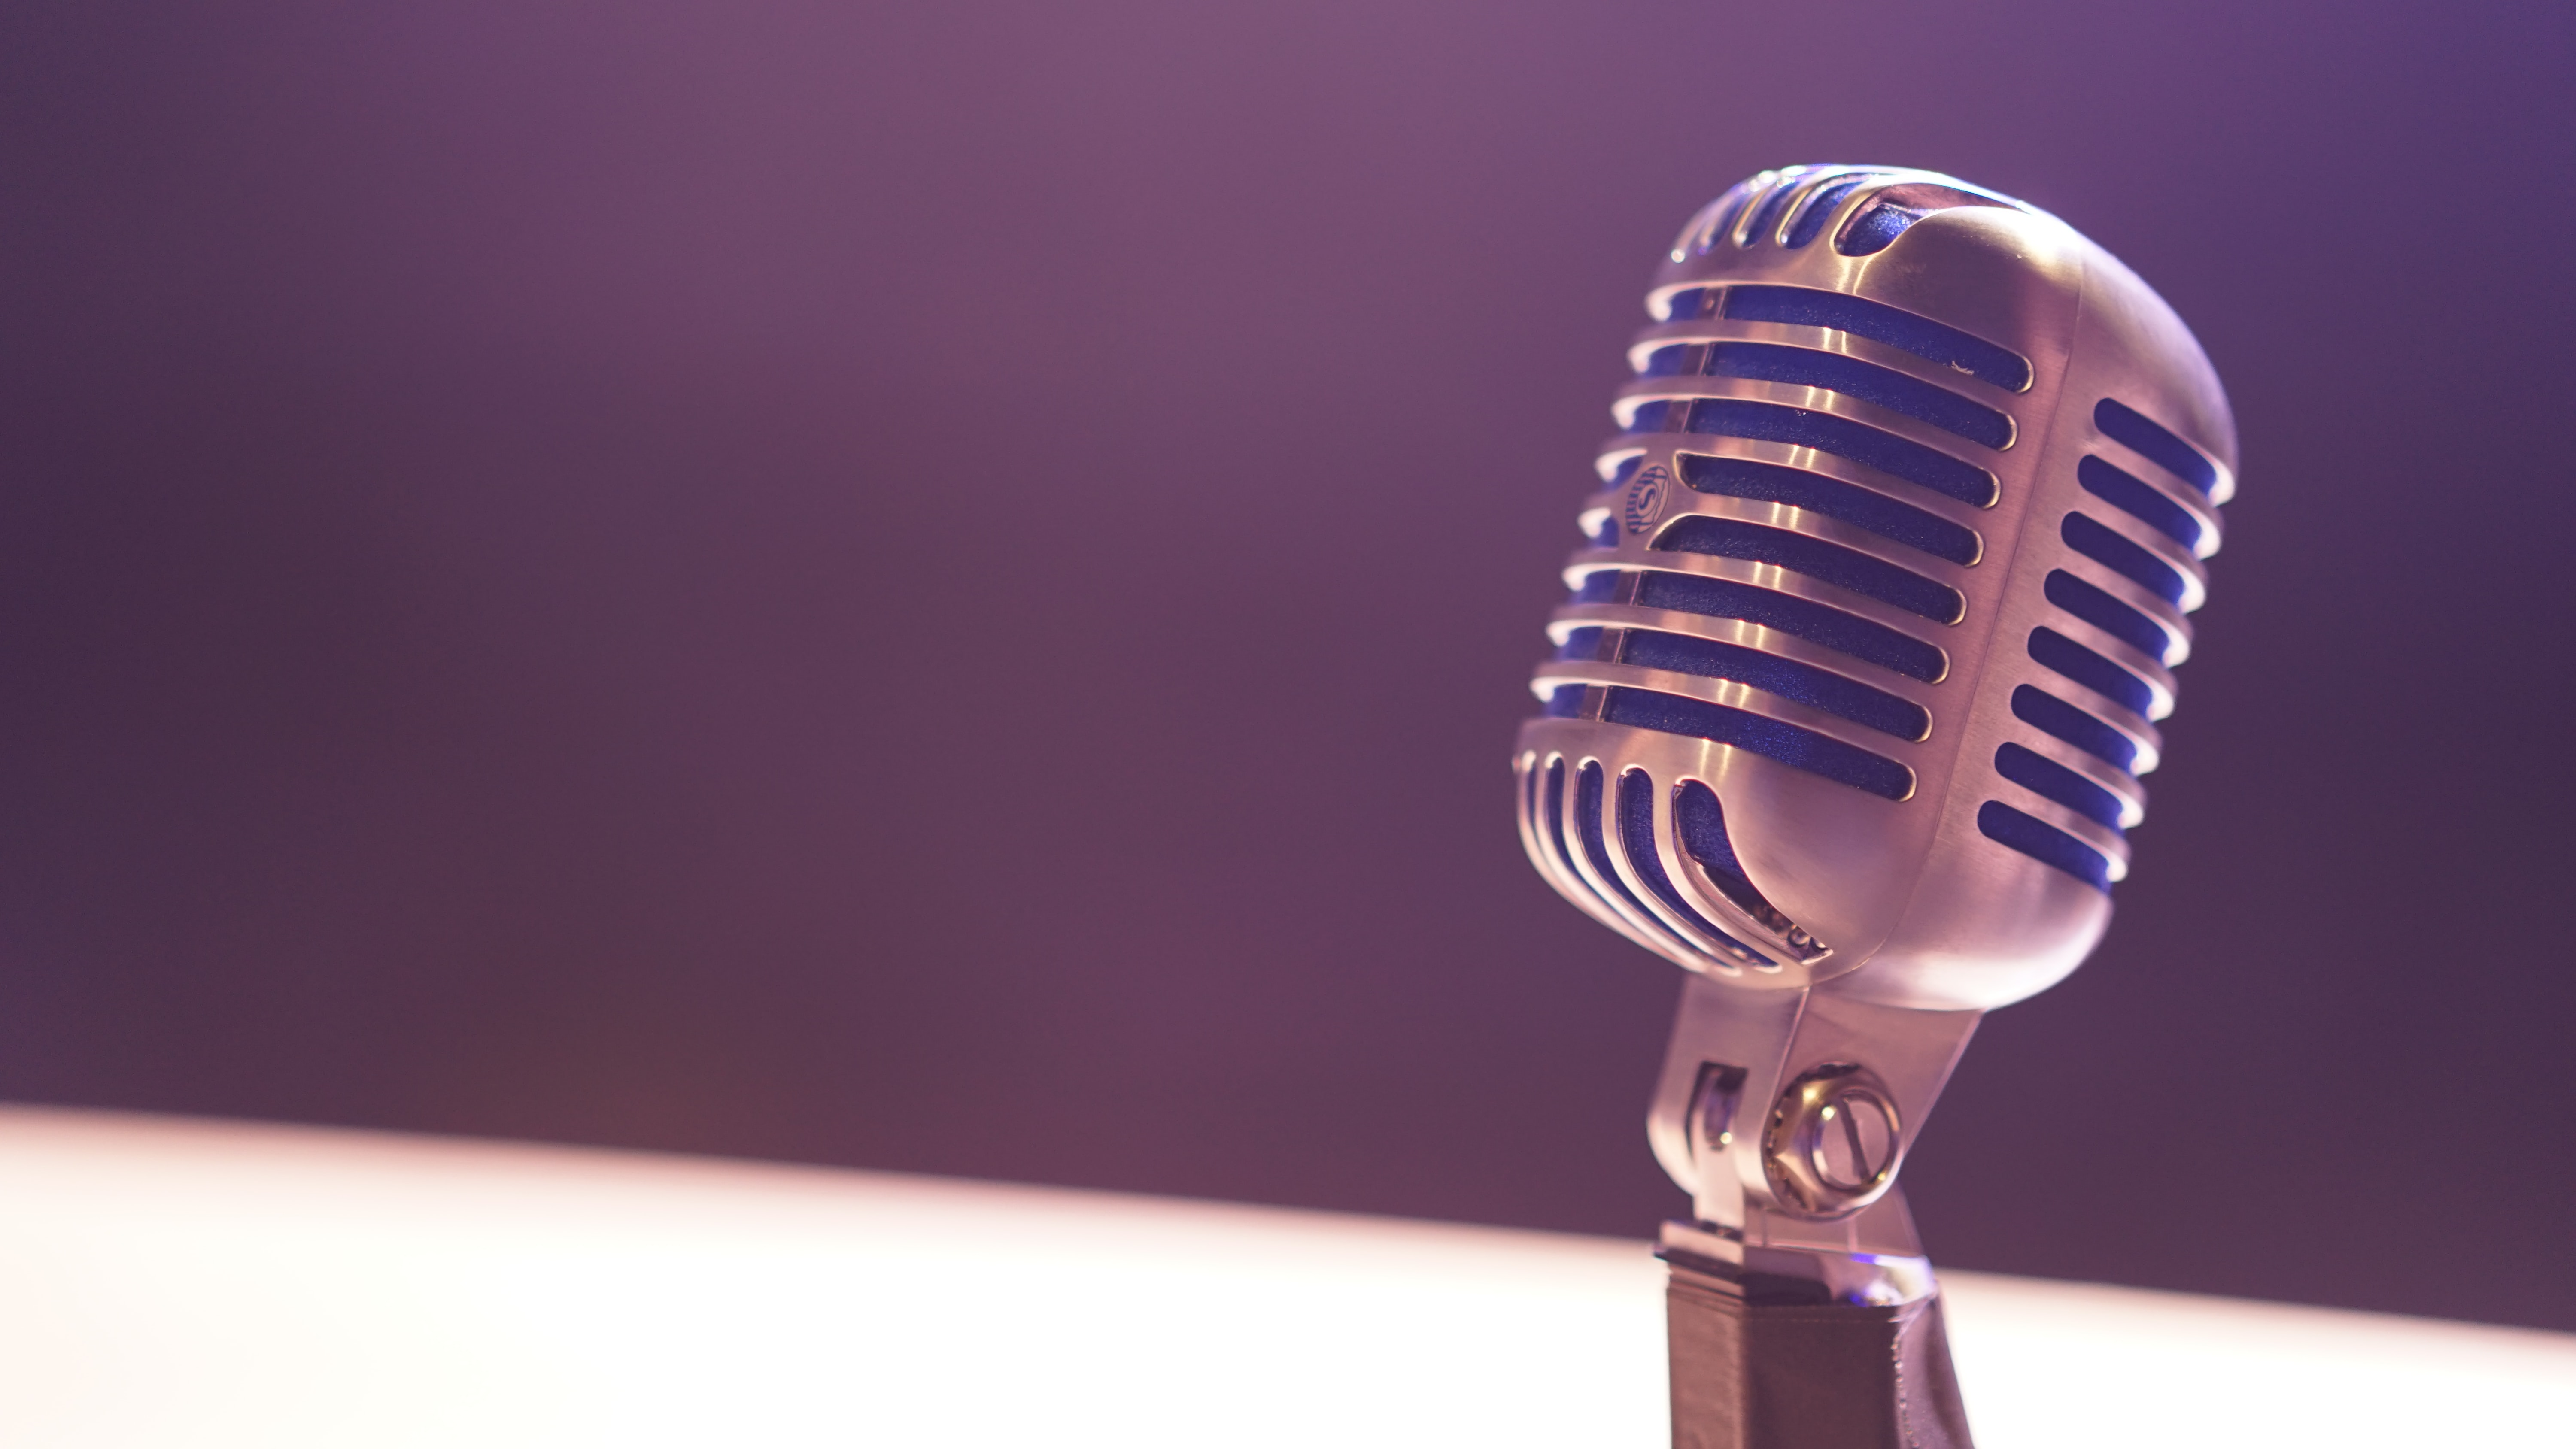 A microphone against a blurry background of white and black